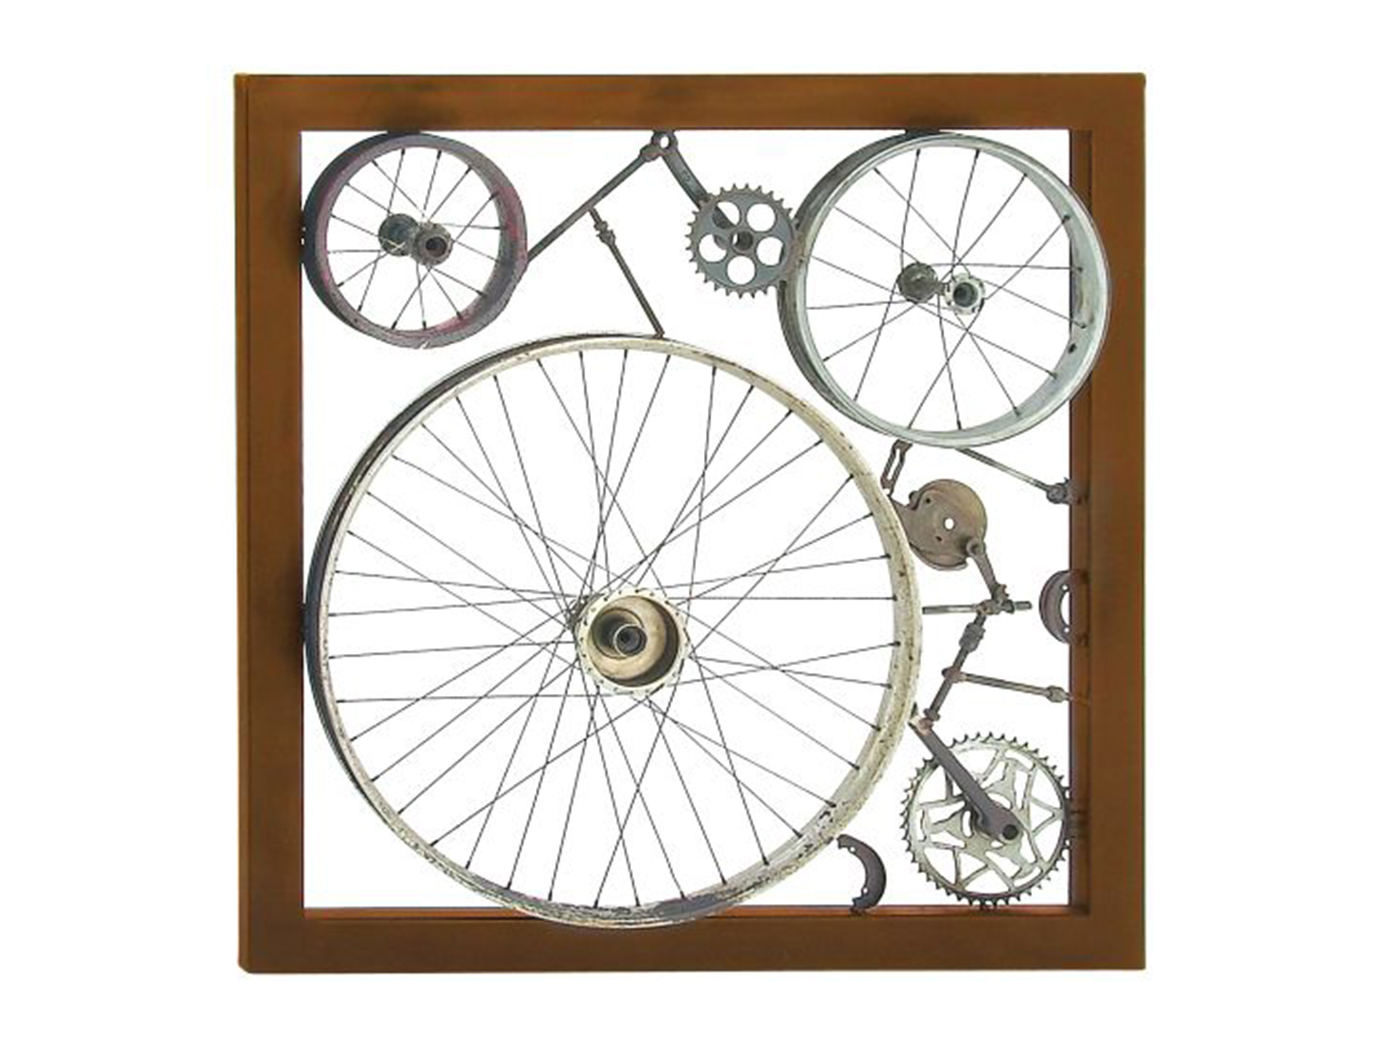 "Bike Wheels and Parts Wall Decor 36""W x 36""H"